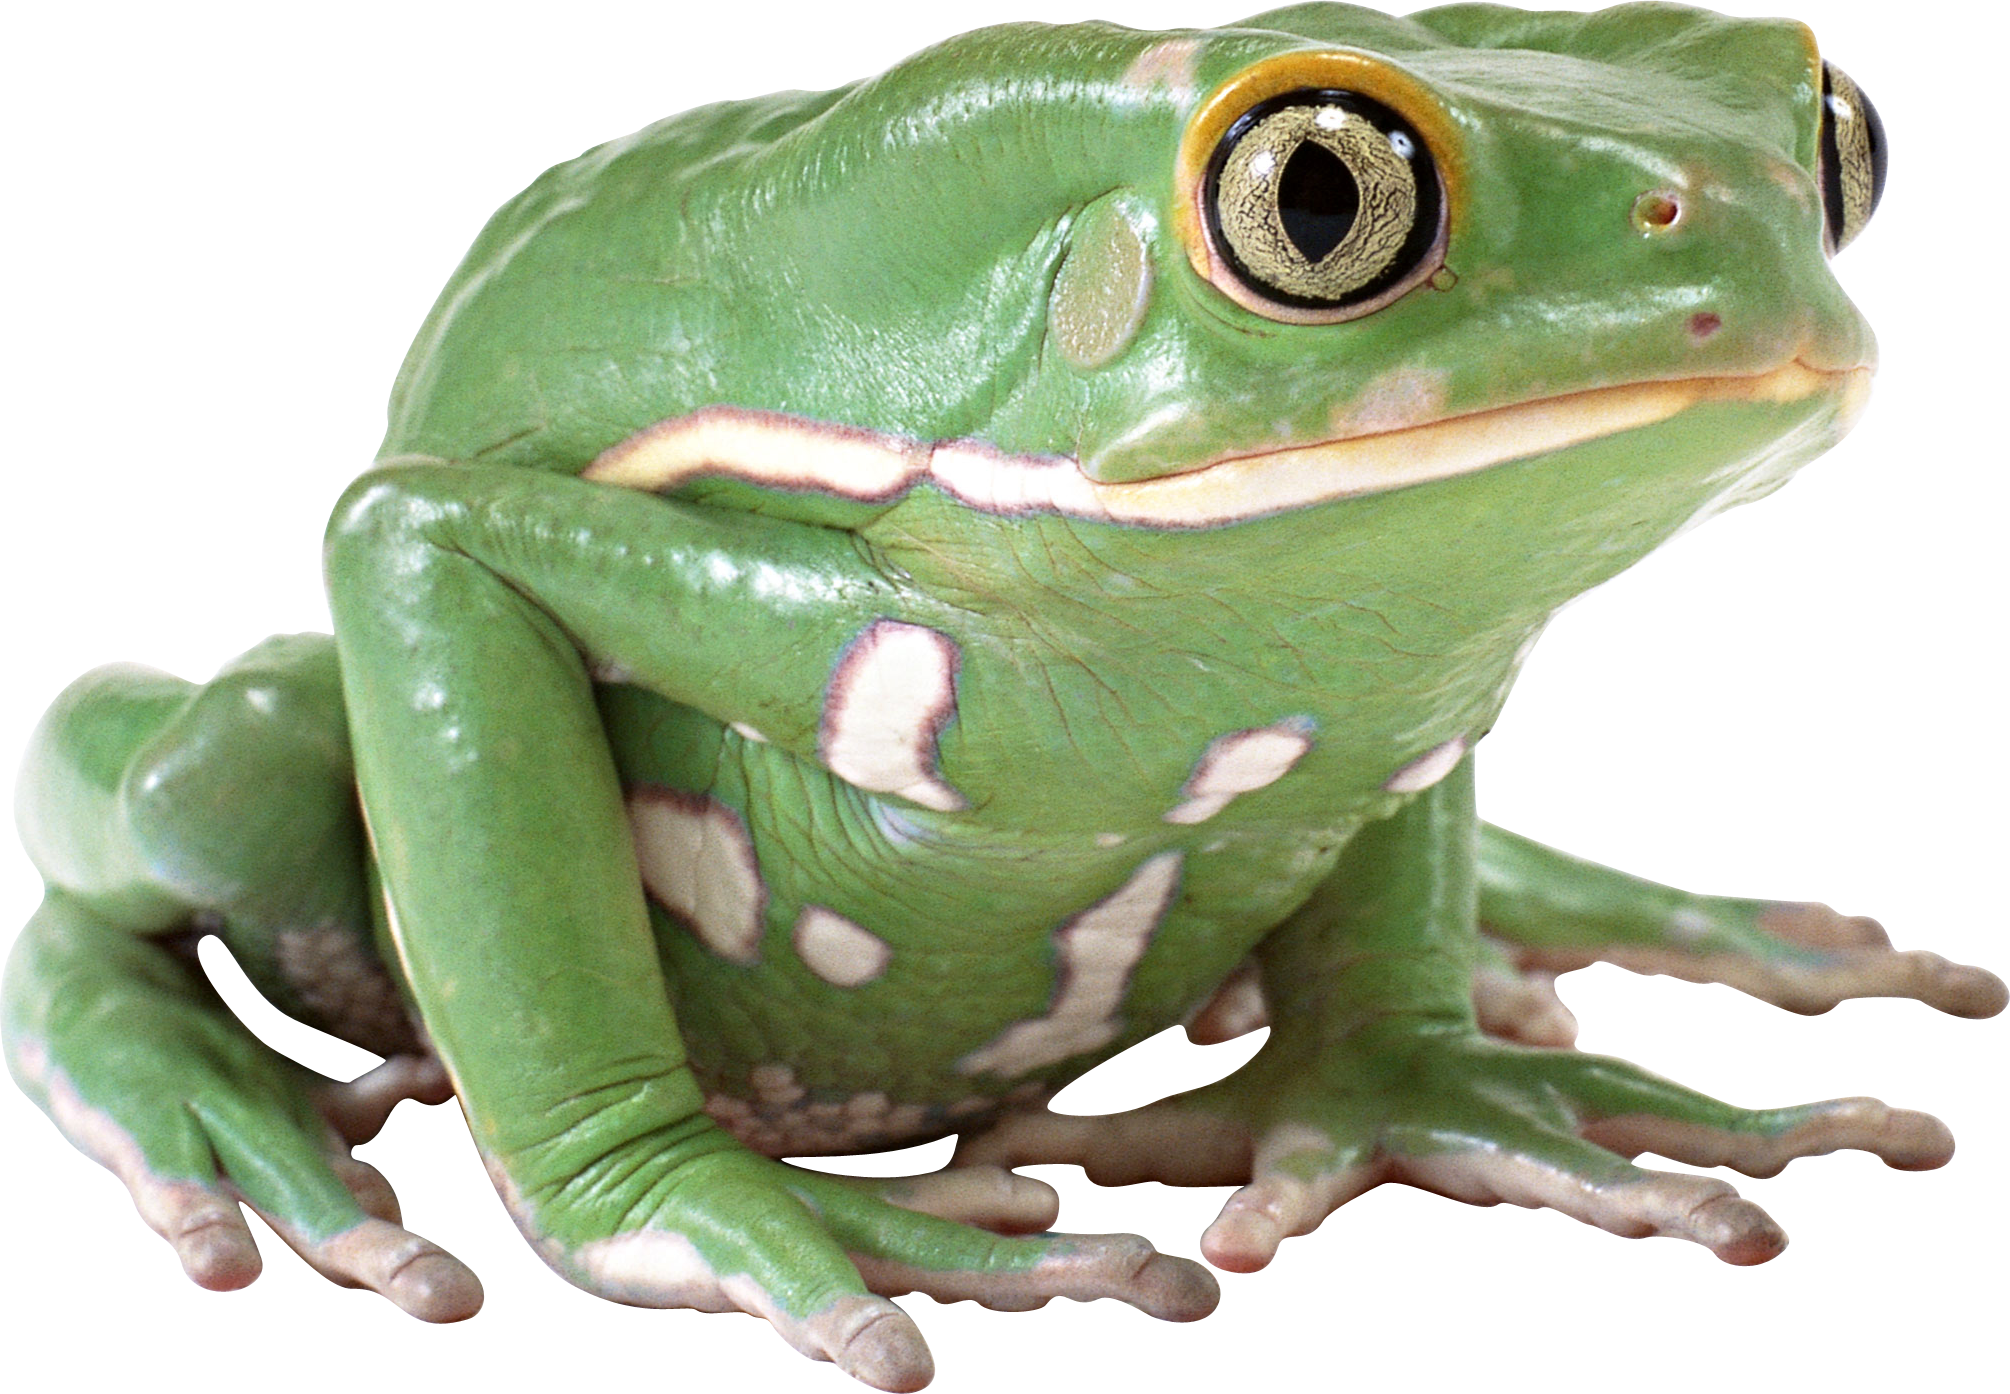 Frog PNG Image Free Download Image, Frogs image #43154 - PNG Frogs Free